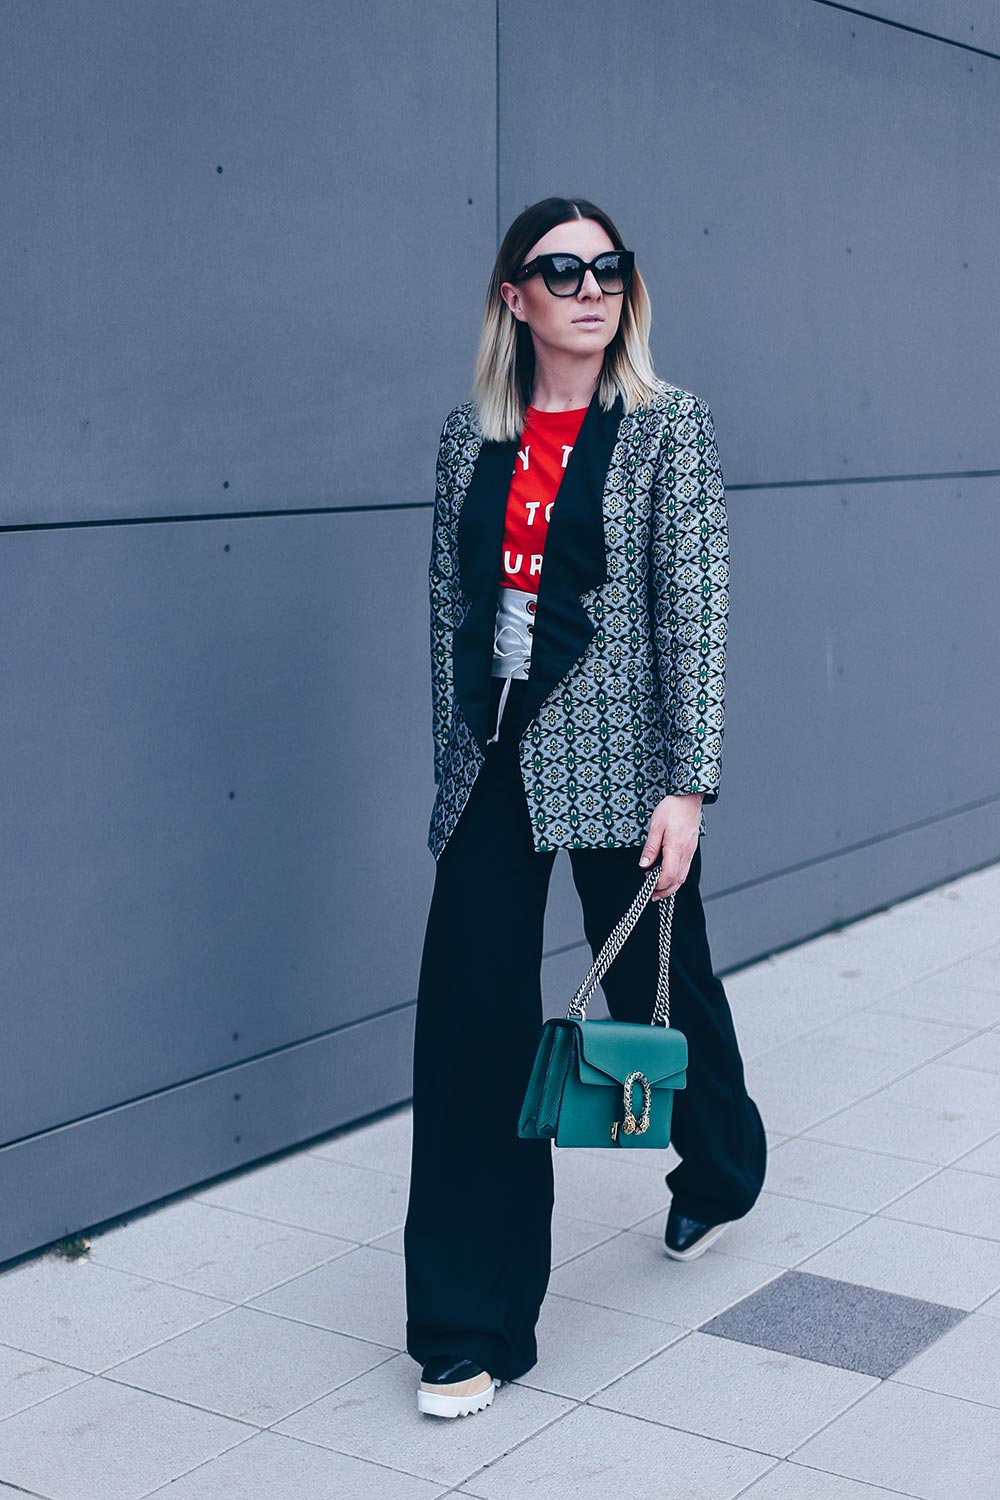 marlene hose styling tipps, Marlenehose outfit, Marlene hose kombinieren, Statement piece, IT piece 2017, style 2017, Office Look, Business casual, Business Style frauen, Büro Outfit damen, Modeblog, Fashion Blog, Style Blog, Kombinations Ideen, Streetstyle 2017, www.whoismocca.com